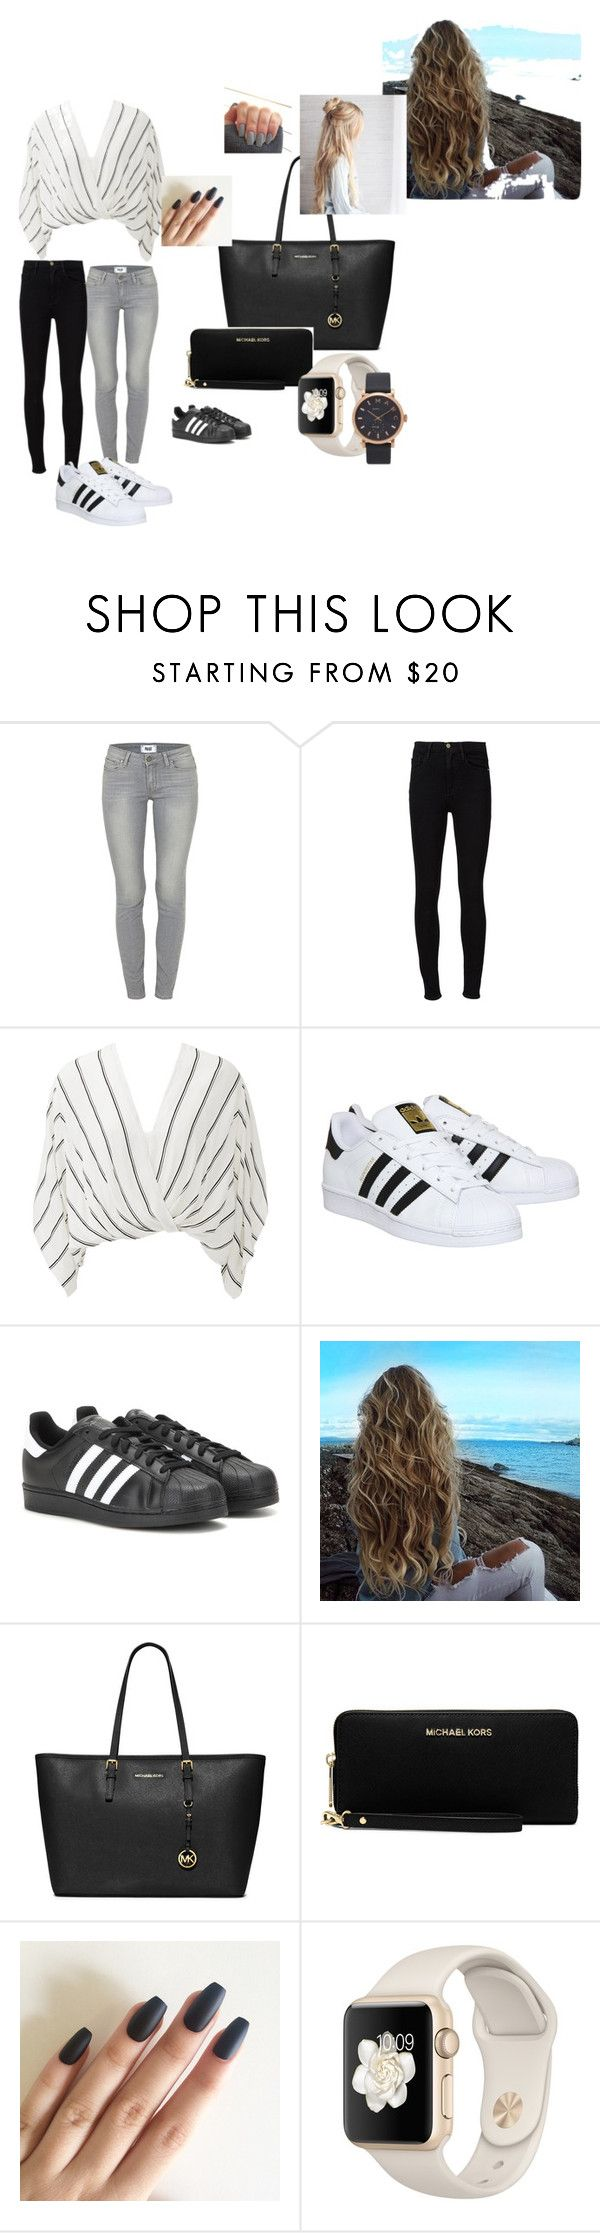 """handtas outfit a"" by alex-luxem on Polyvore featuring mode, Paige Denim, Frame Denim, Free People, adidas, MICHAEL Michael Kors en Marc Jacobs"